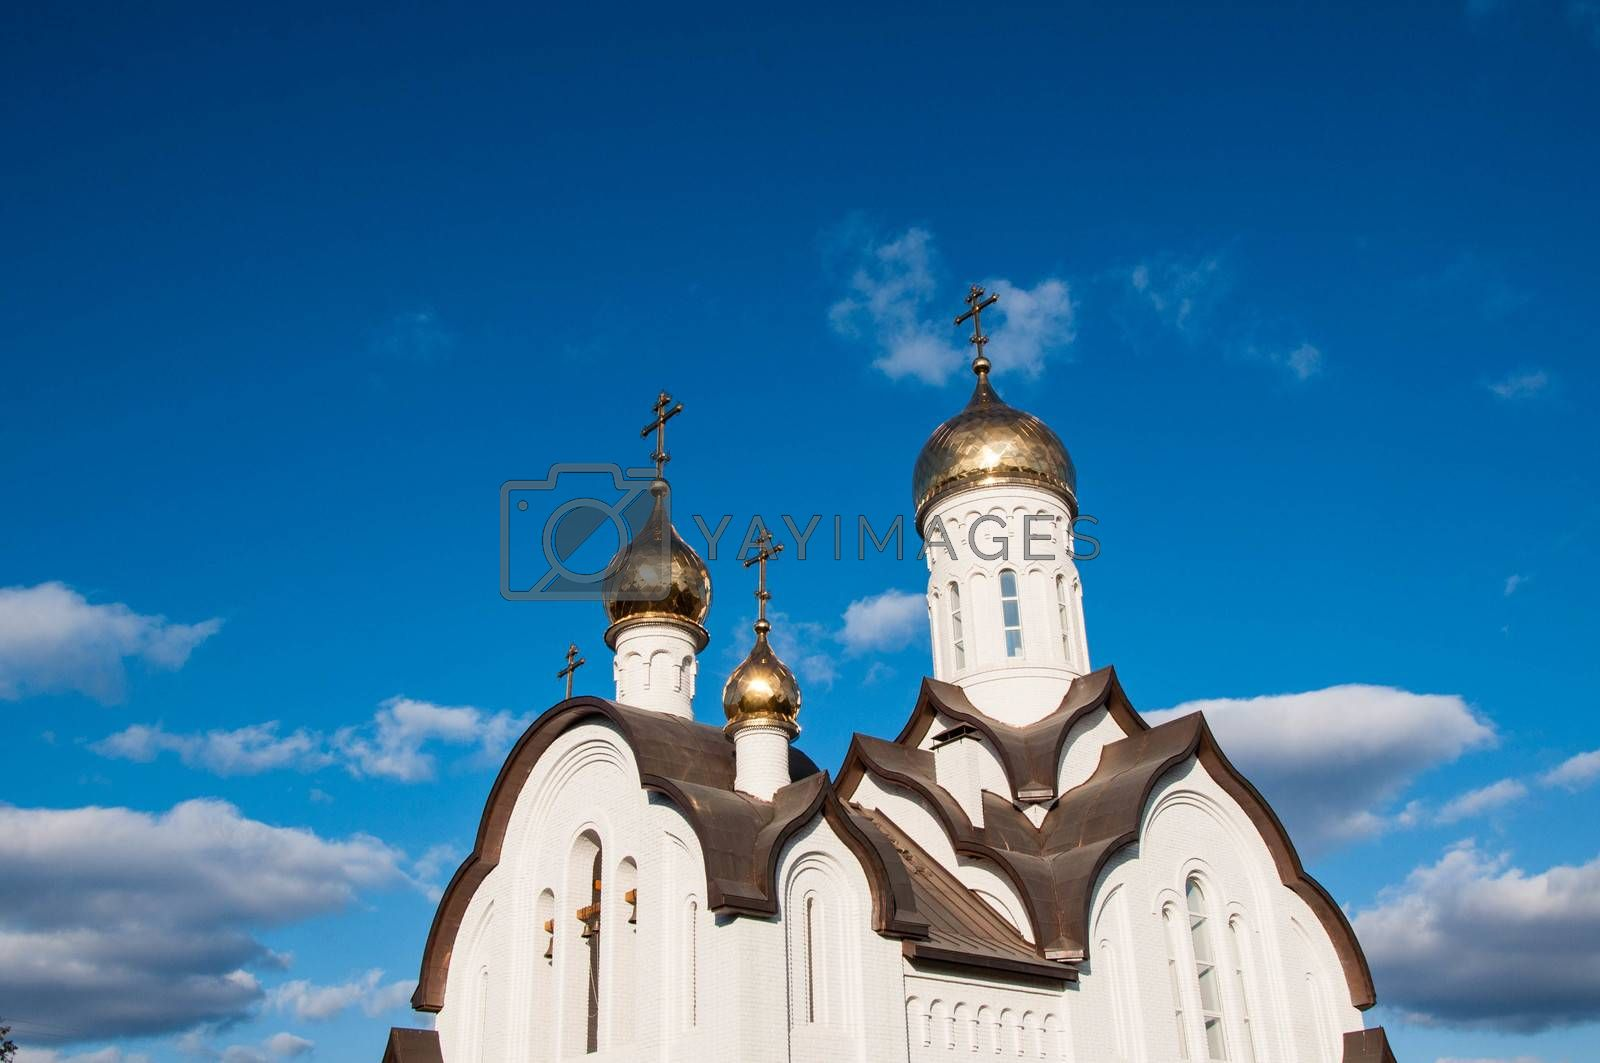 The dome of the Christian Church against the background of blue sky and white clouds.